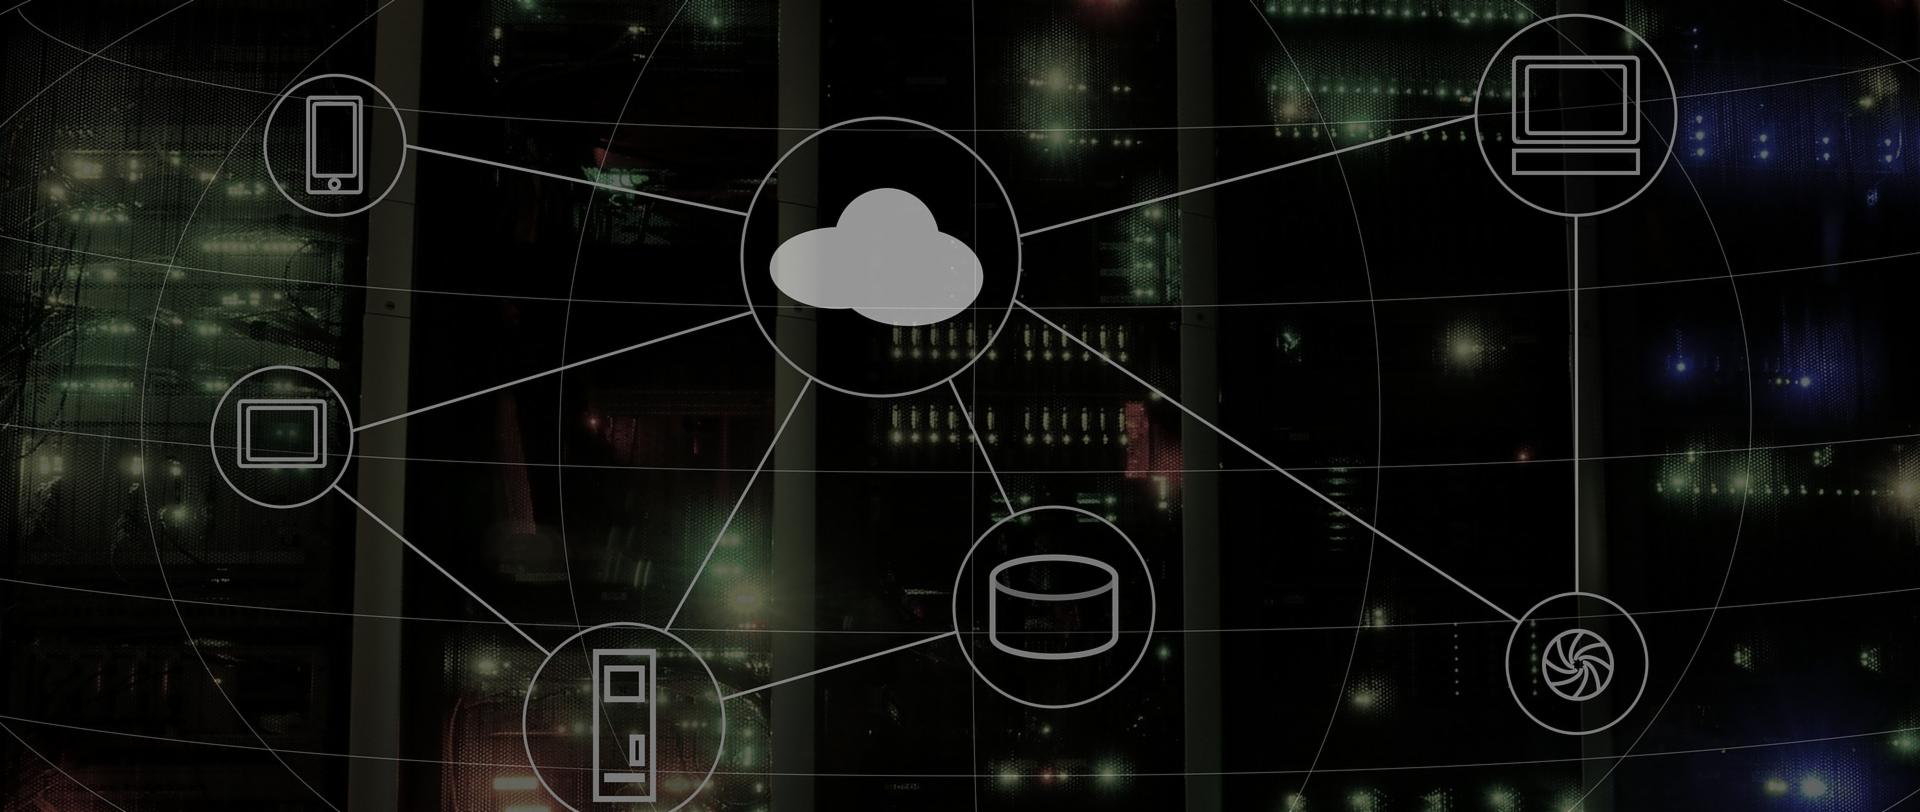 Why we should use the Cloud at the Workplace?